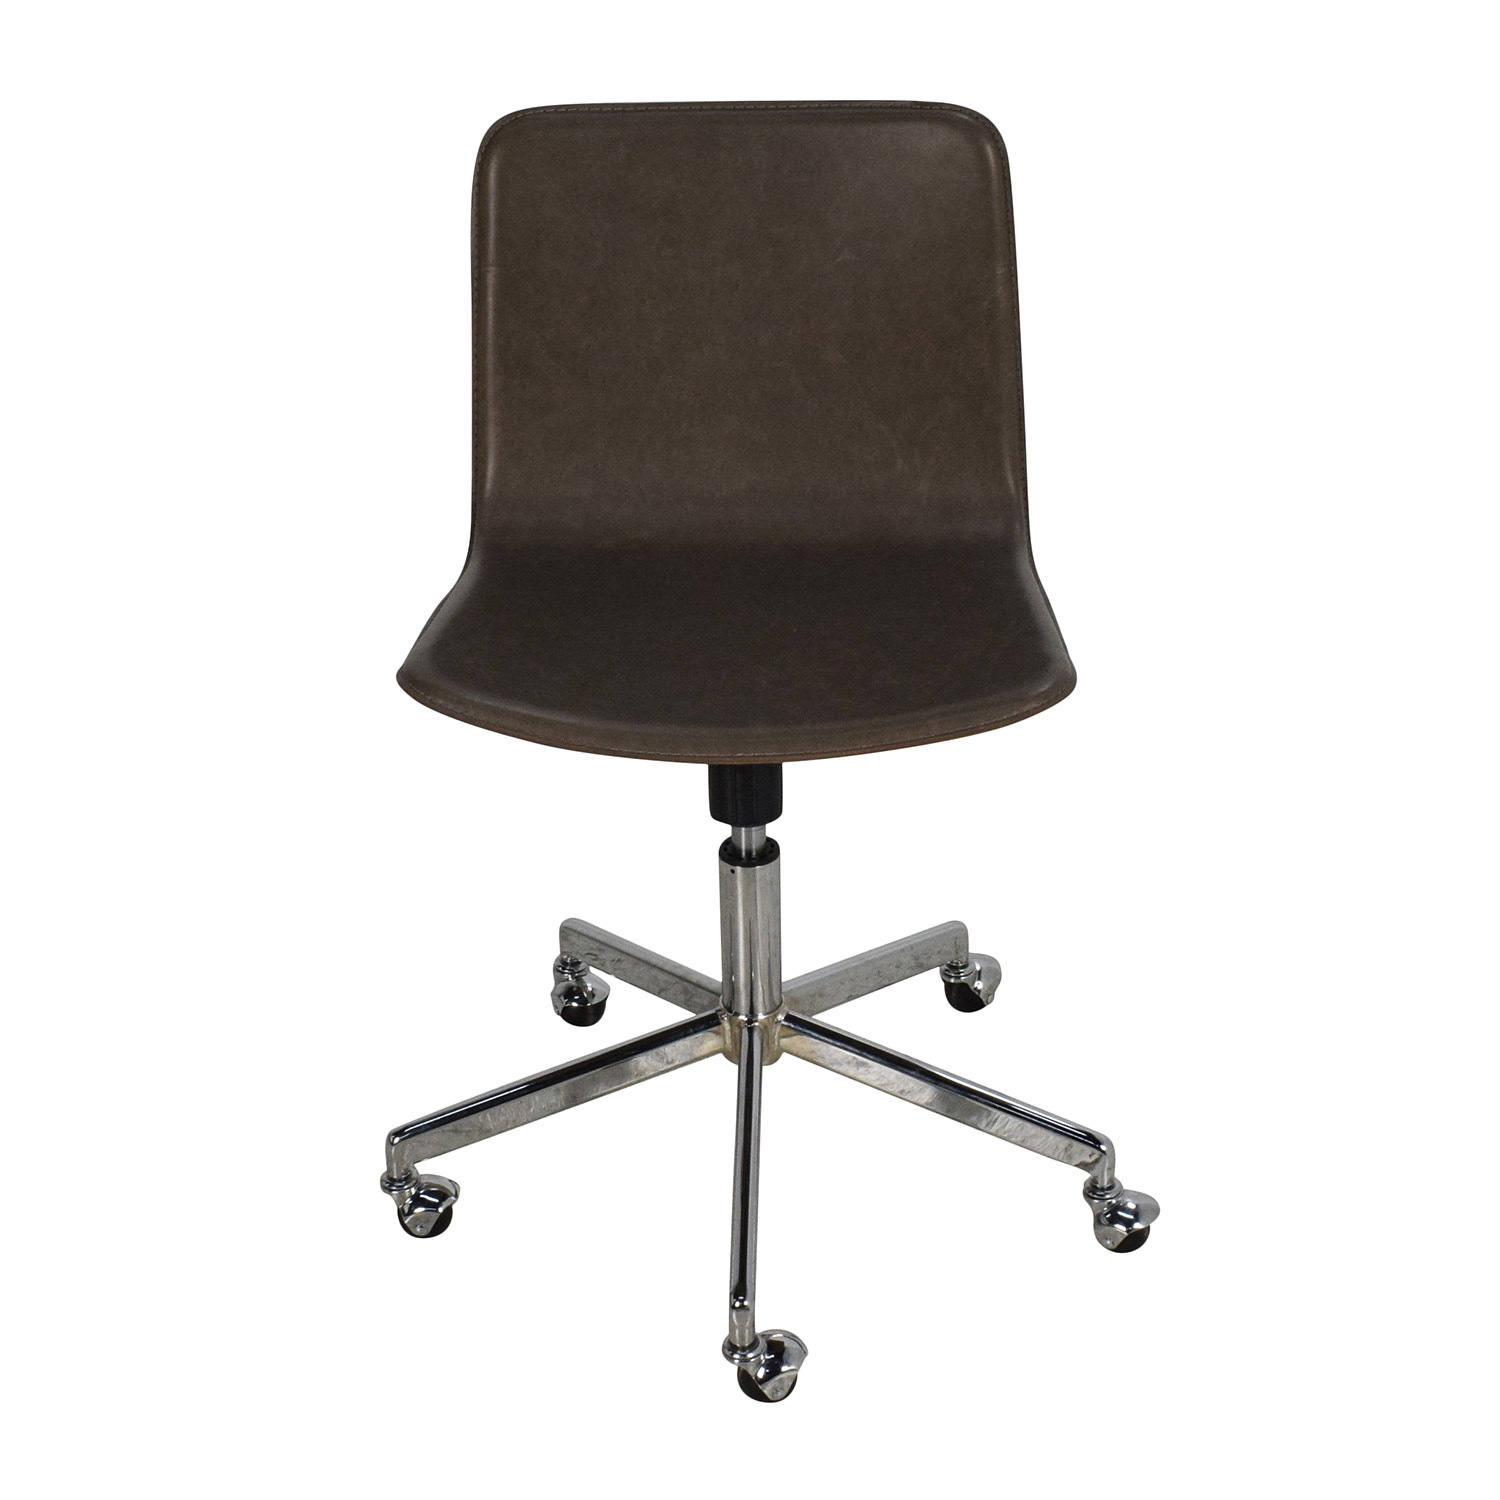 CB2 CB2 Stratum Office Chair Chairs